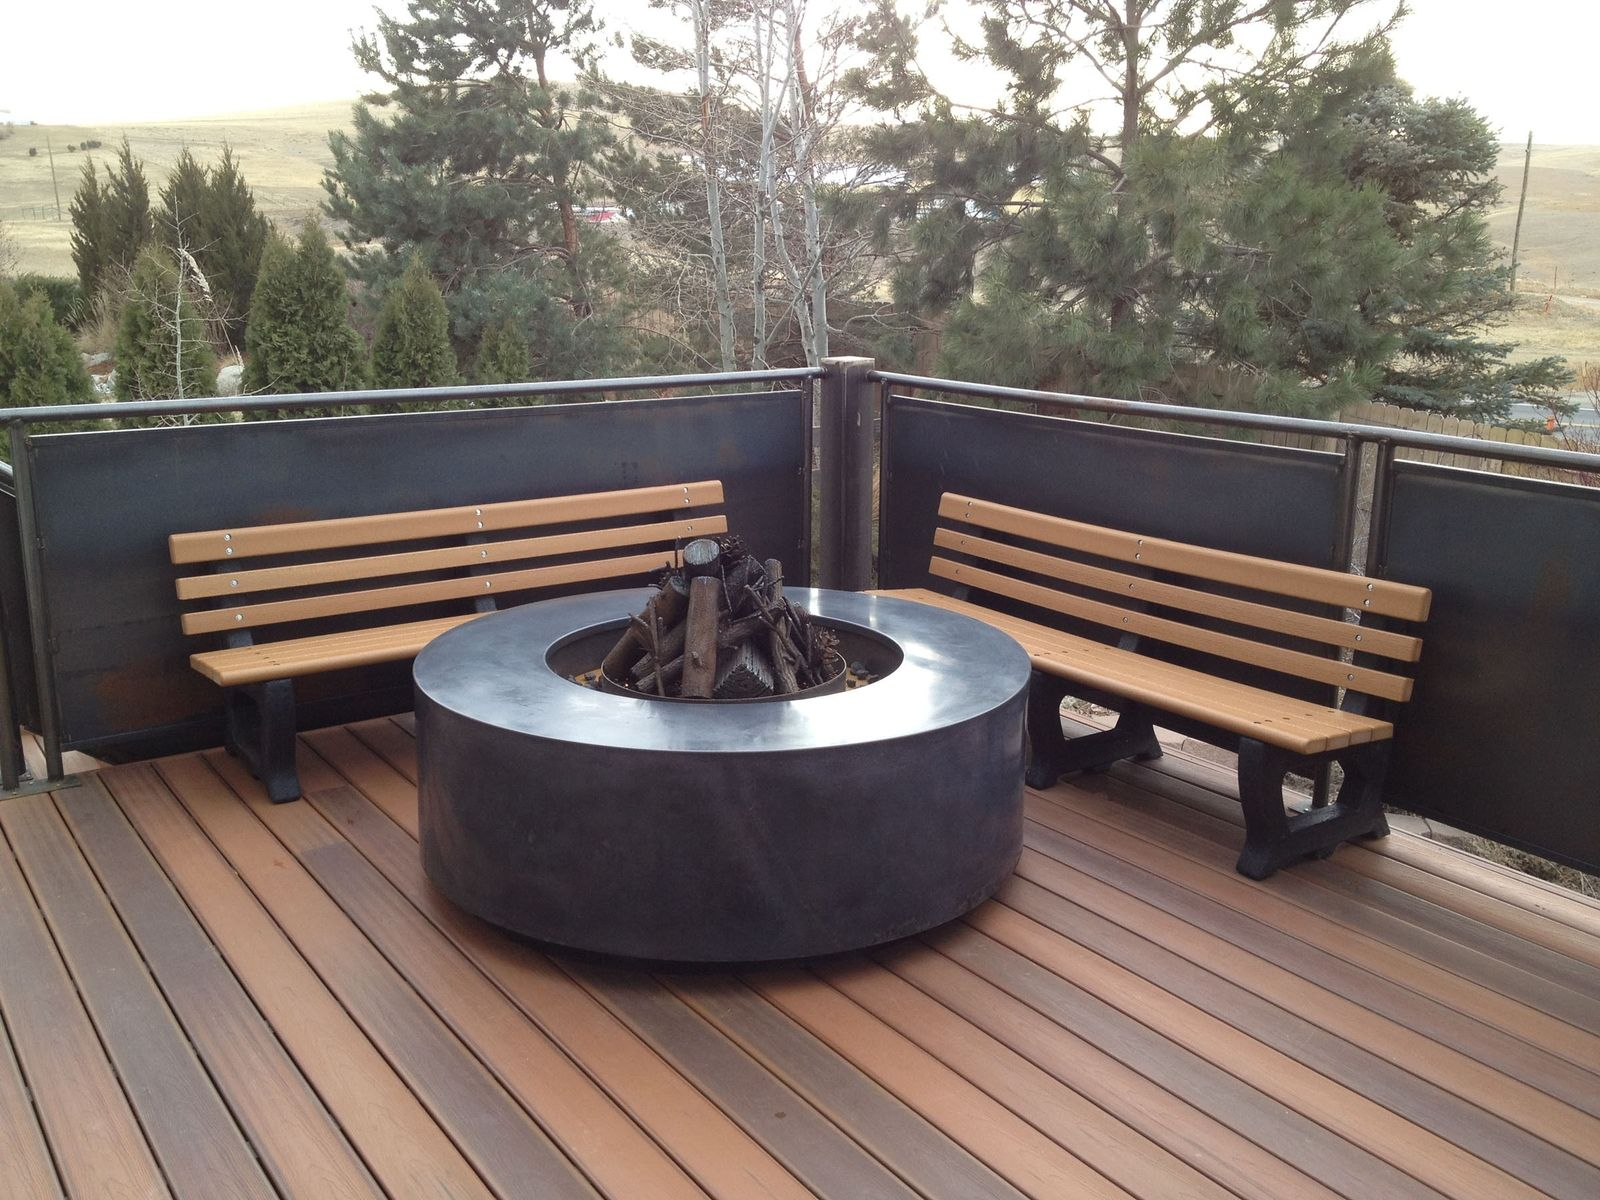 Enjoyable Handmade Floating Concrete Fire Pit Surround By Concrete Bralicious Painted Fabric Chair Ideas Braliciousco